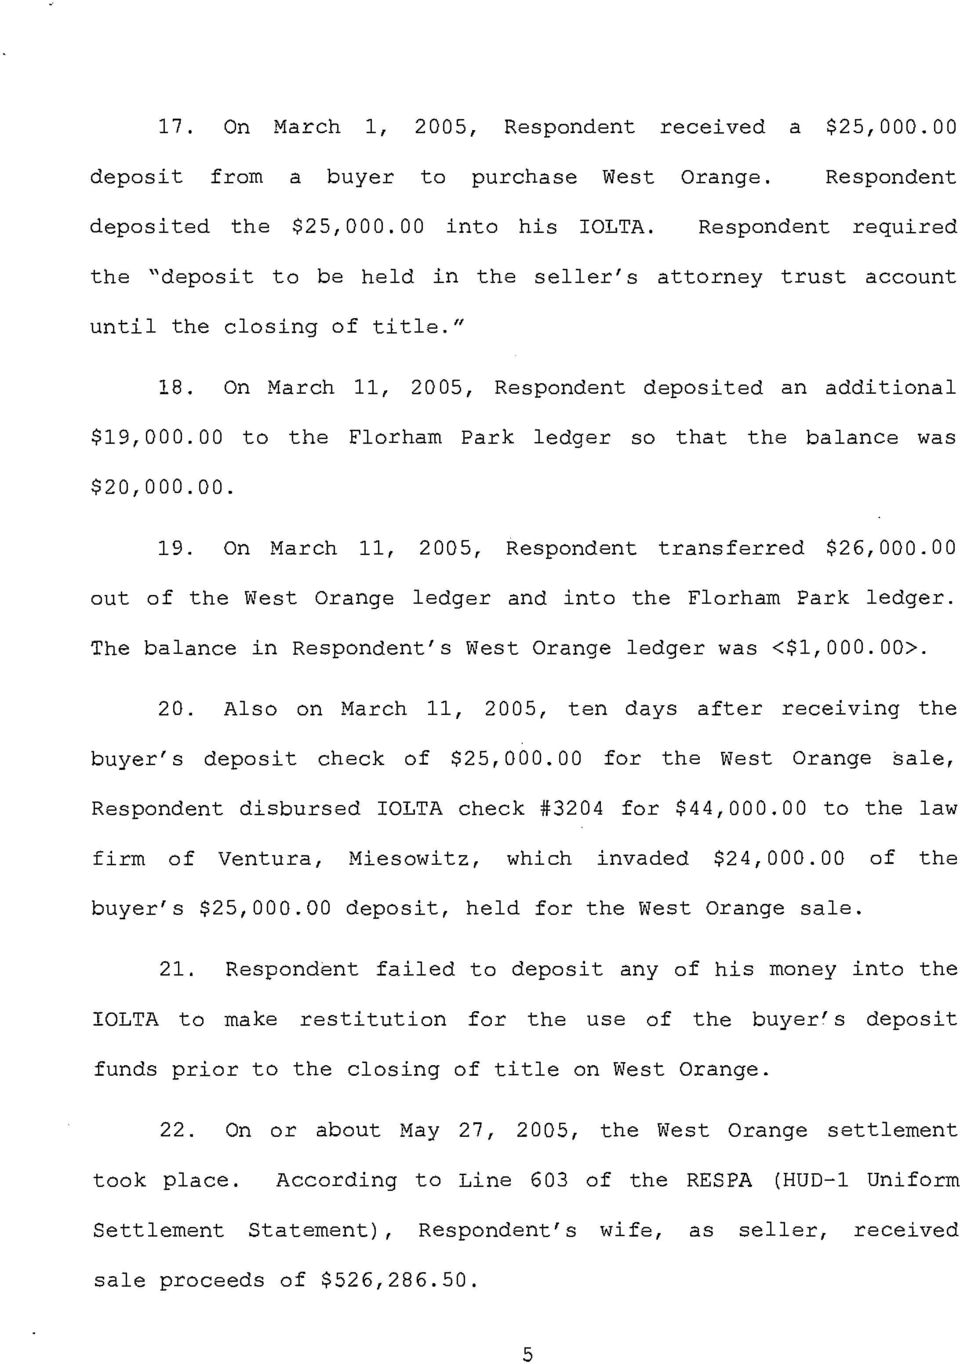 00 to the Florham Park ledger so that the balance was $20,000.00. 19. On March 11, 2005, Respondent transferred $26,000.00 out of the West Orange ledger and into the Florham Park ledger.